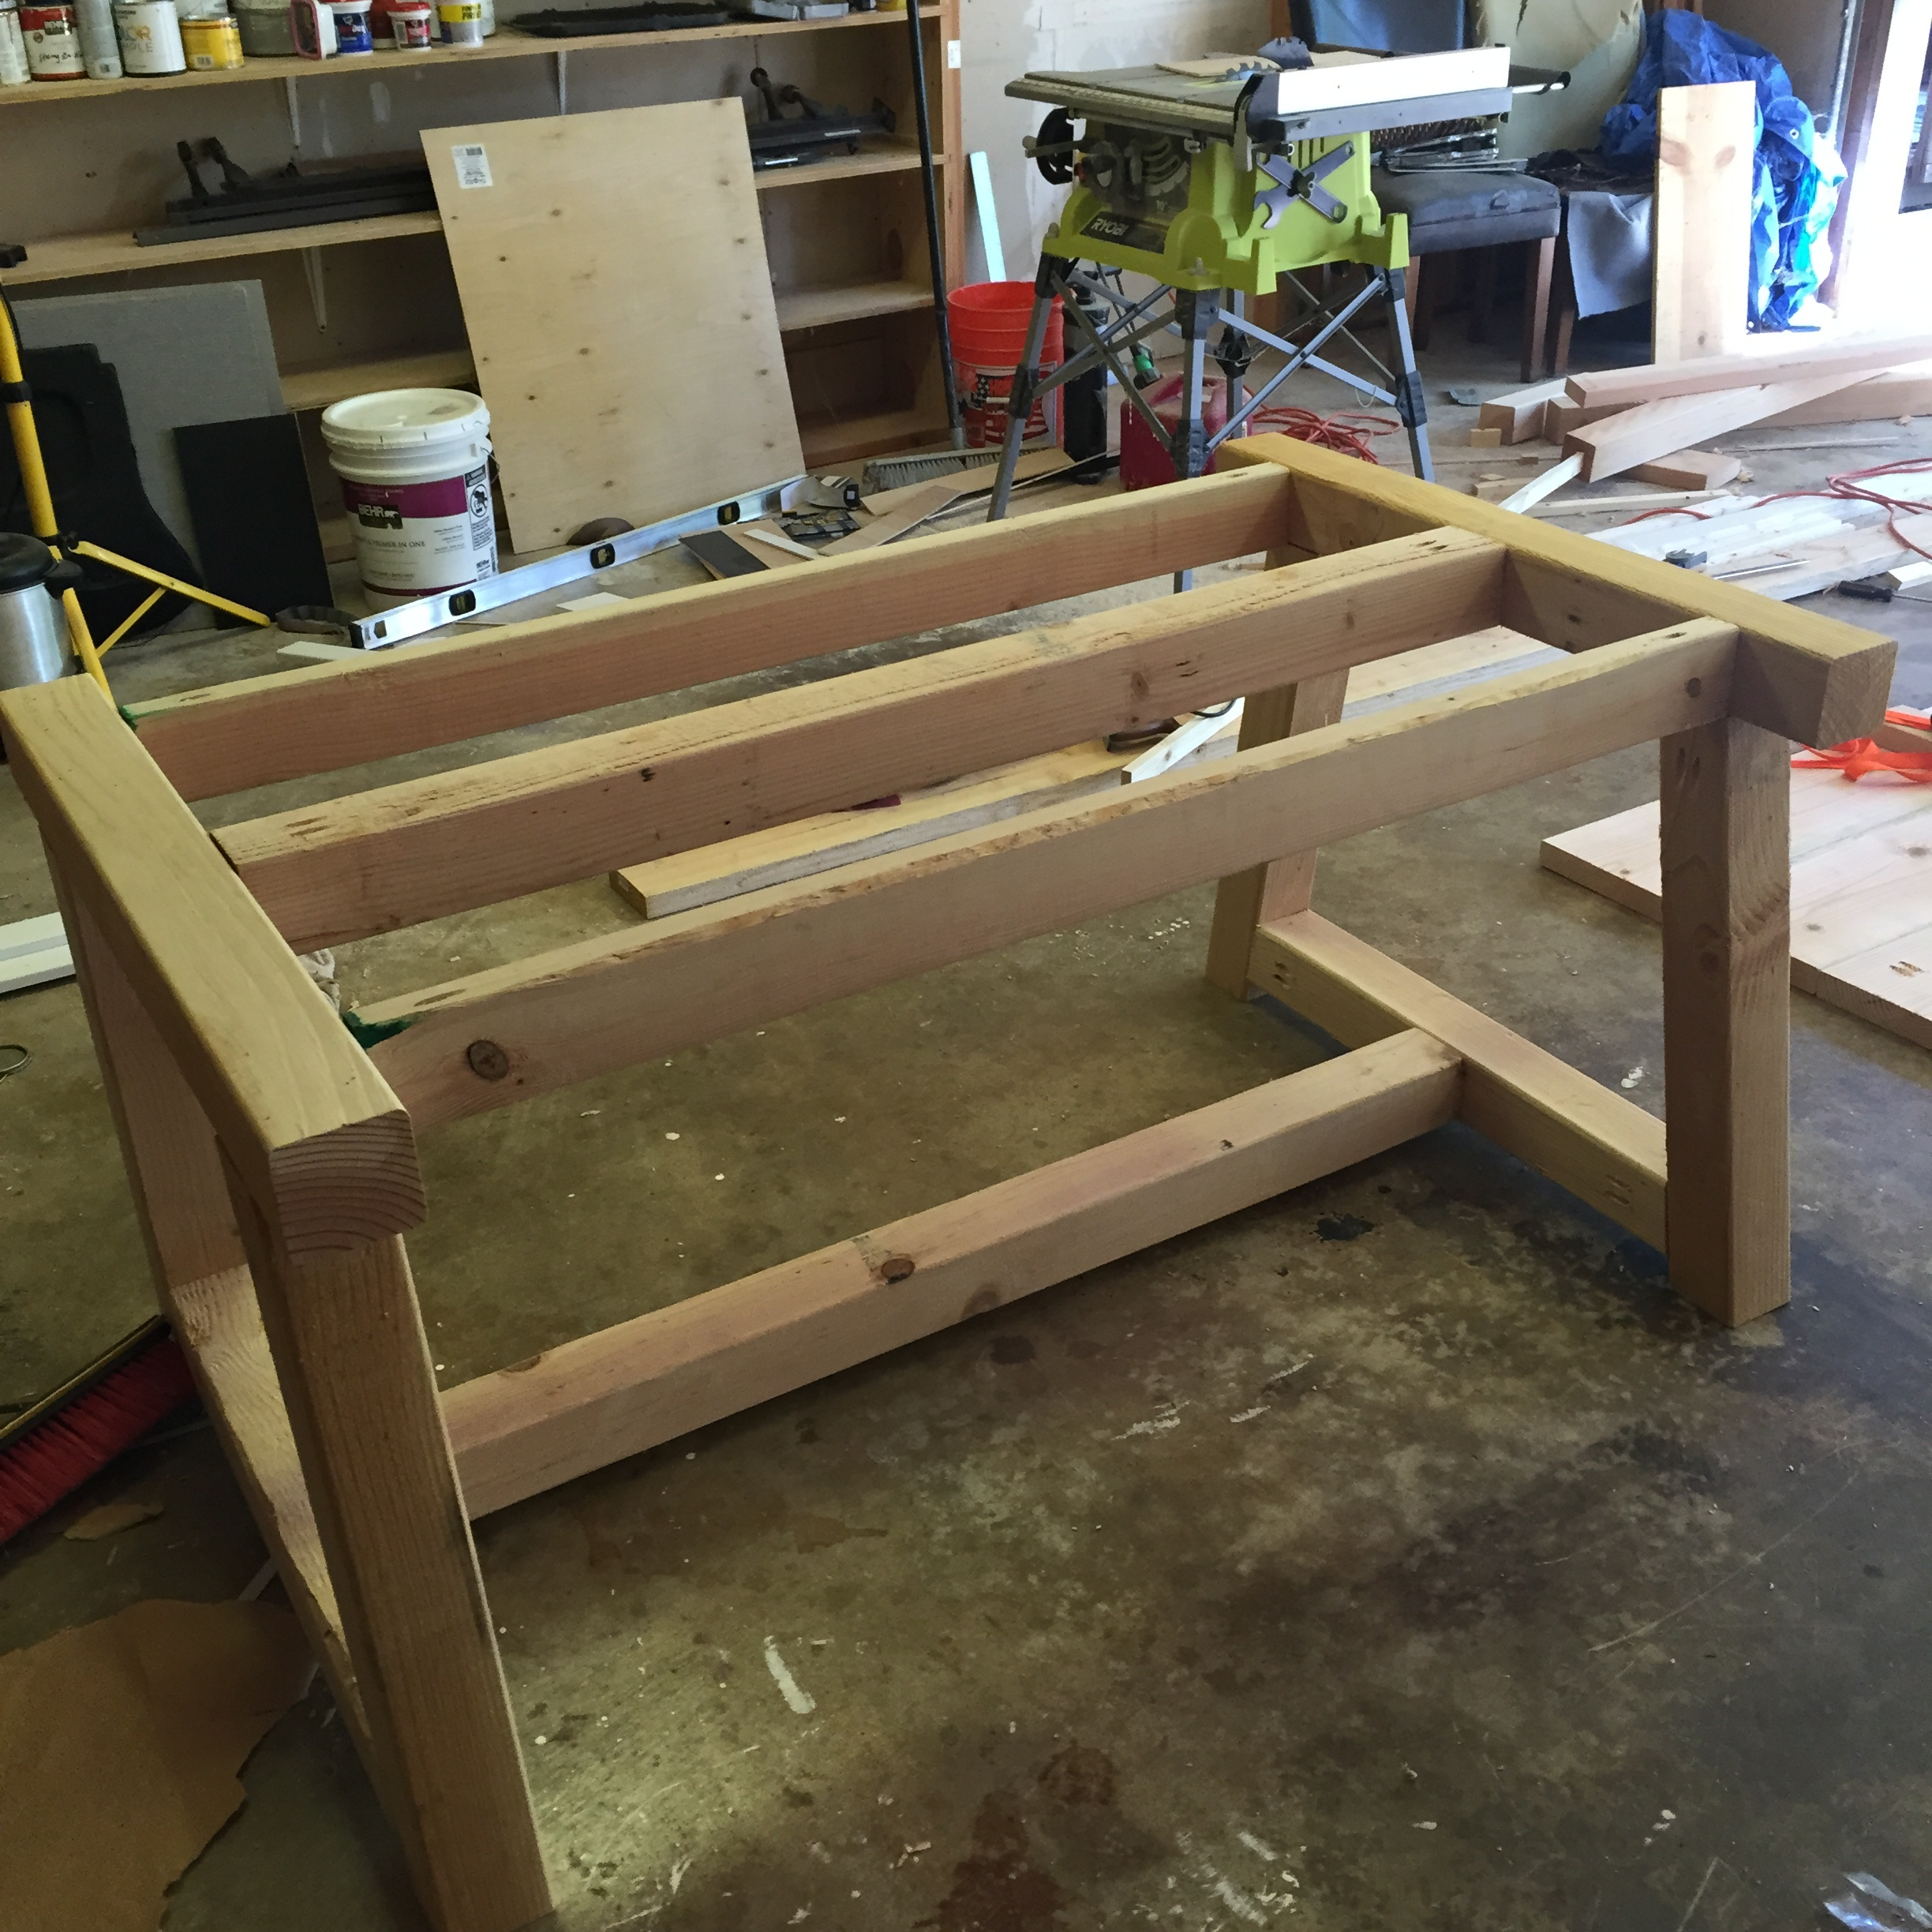 Once the top 2x4's are attached, we flipped the table over and attached the bottom 4x4